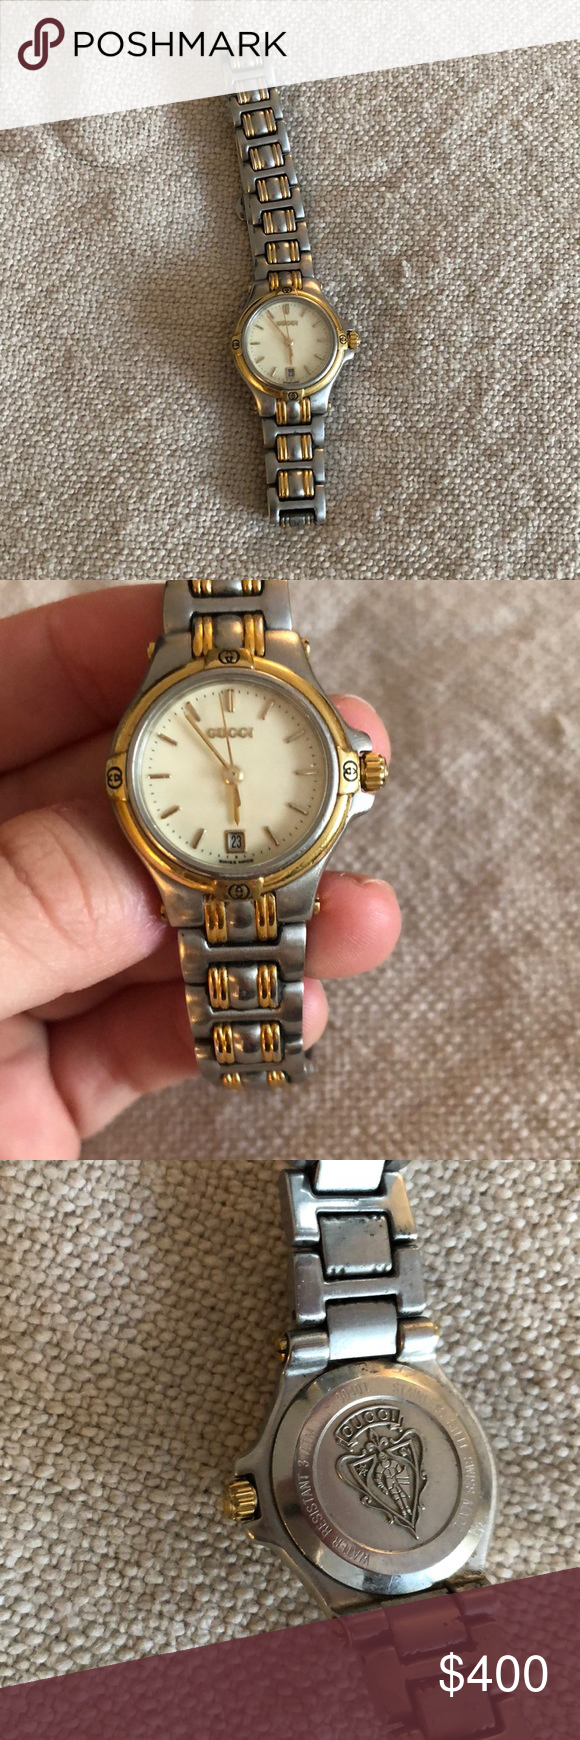 d1d426a5bc7 9000L Swiss 2 tone stainless steel 25mm gold dial analog. Comes with box    extra links! Needs new battery. Gucci Accessories Watches